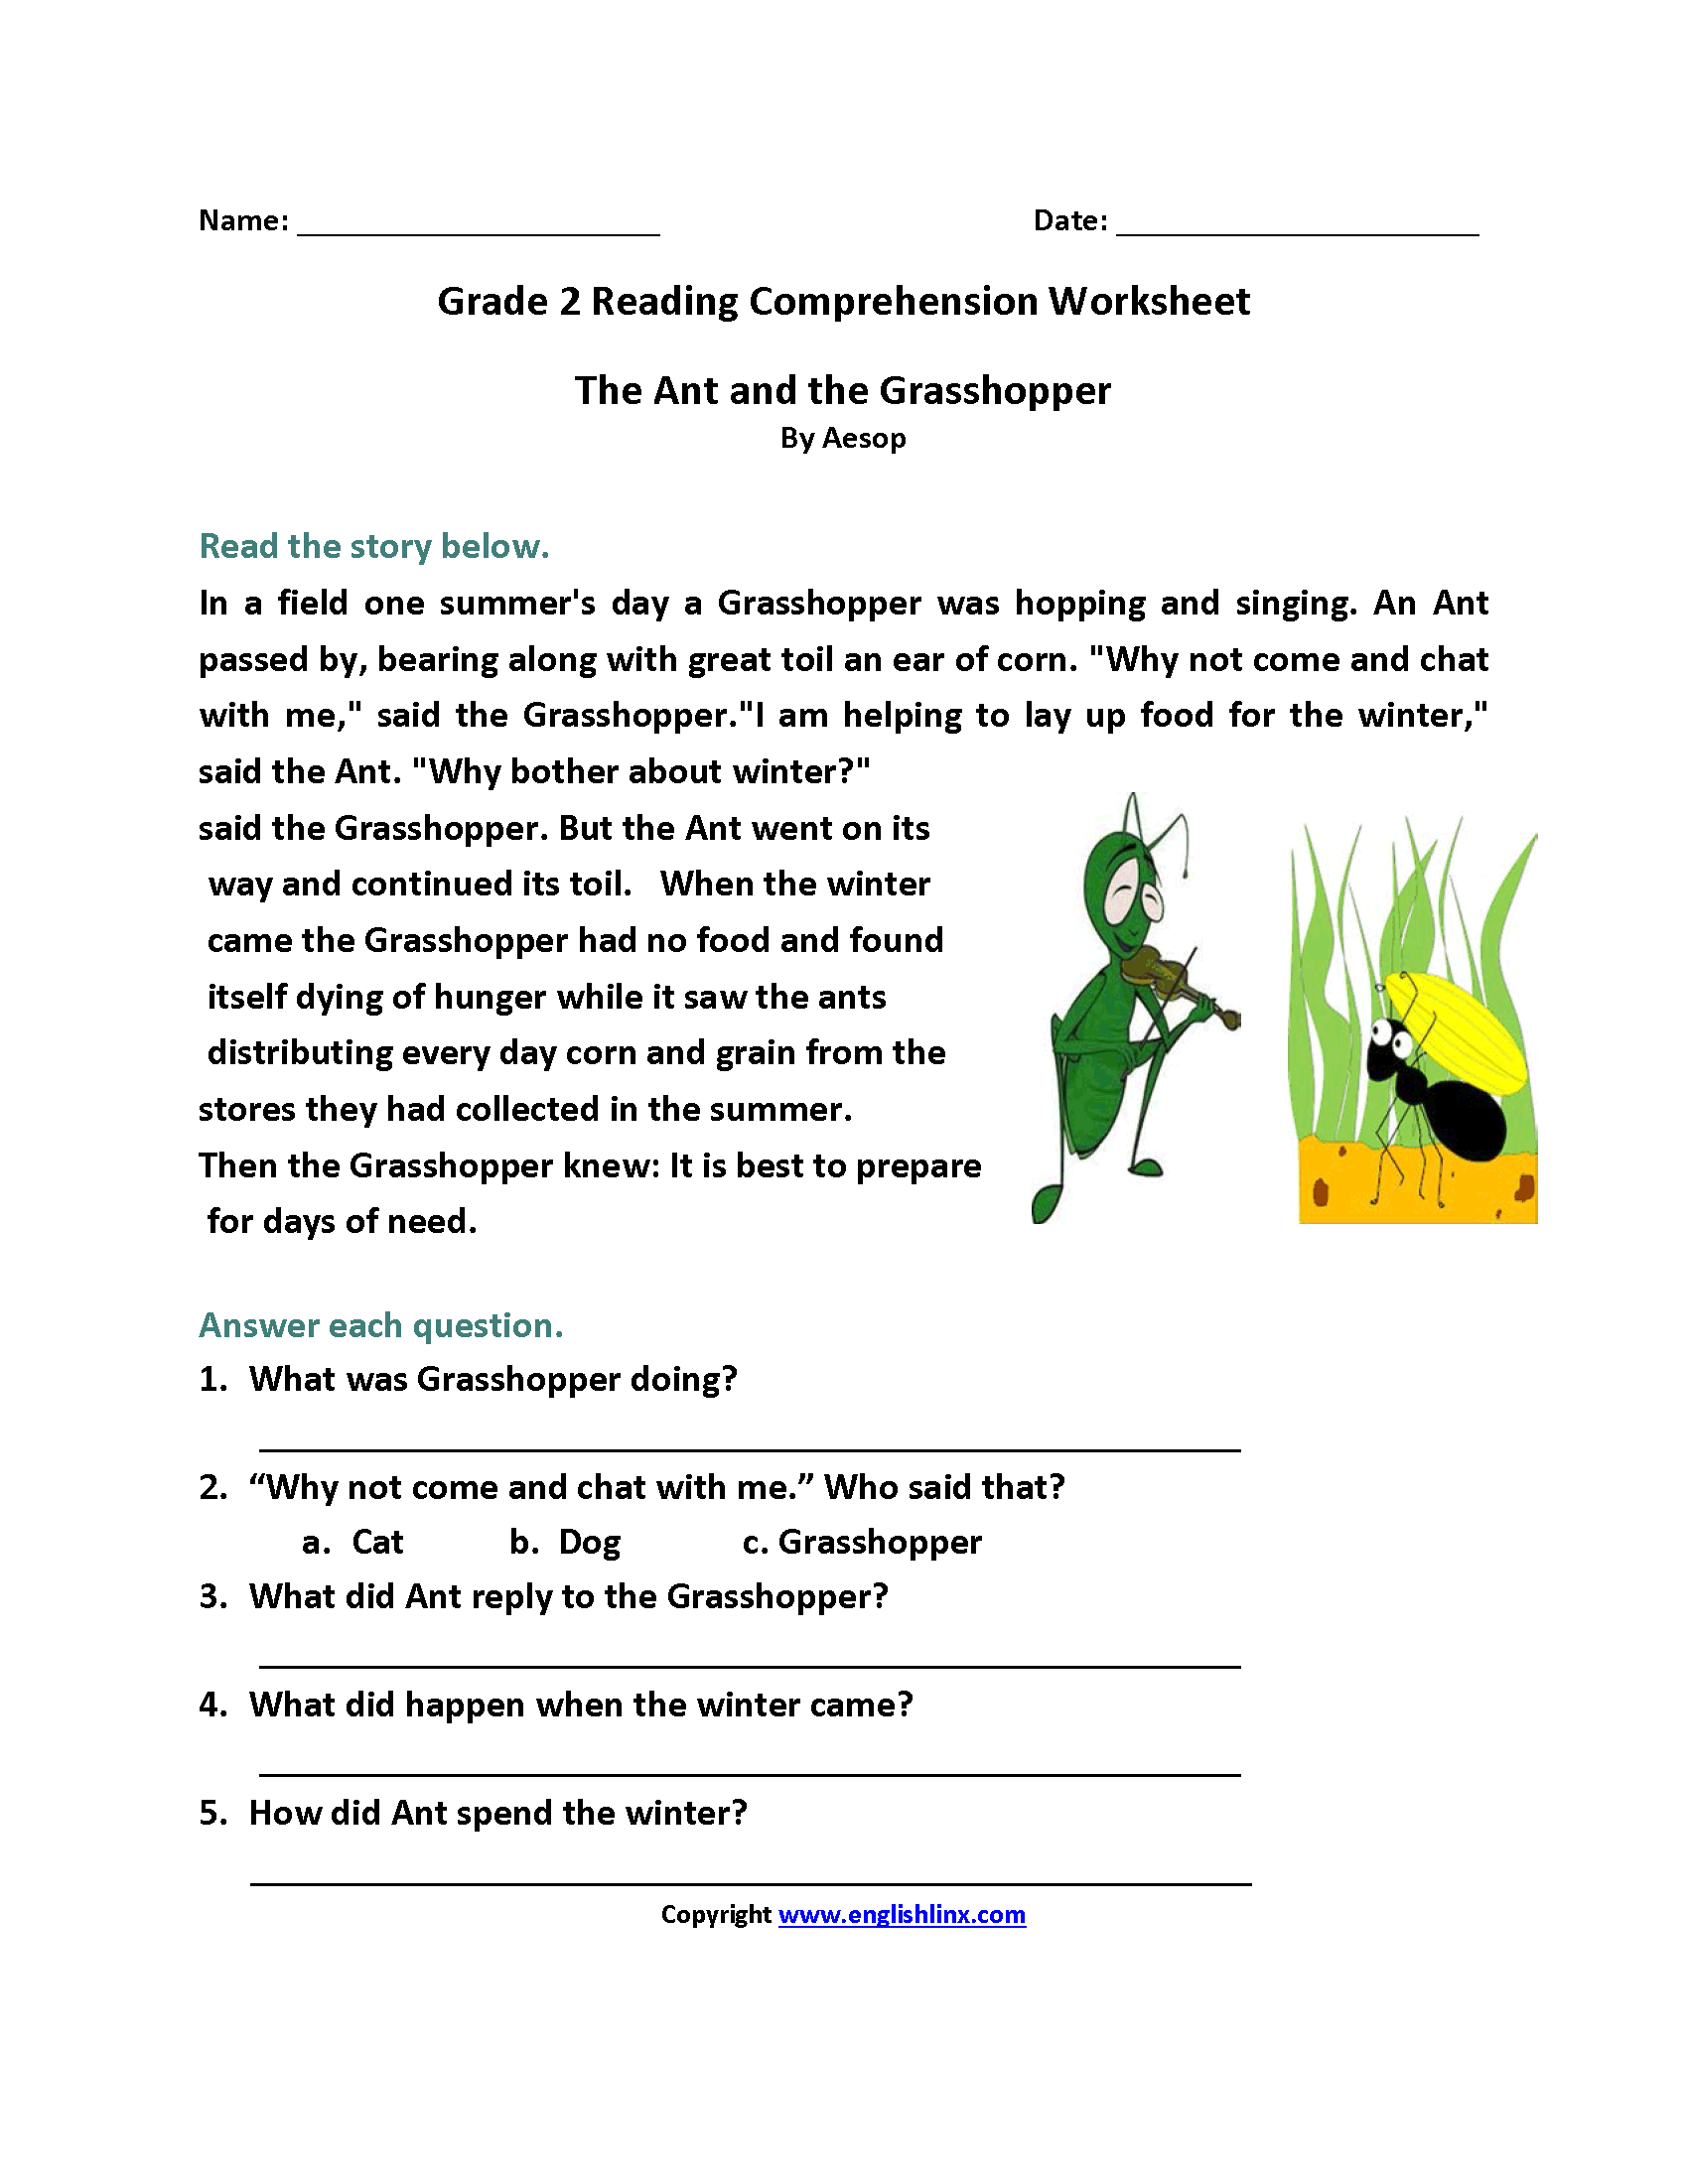 Worksheets Grade 2 Reading Comprehension Worksheets english worksheets reading second grade worksheets